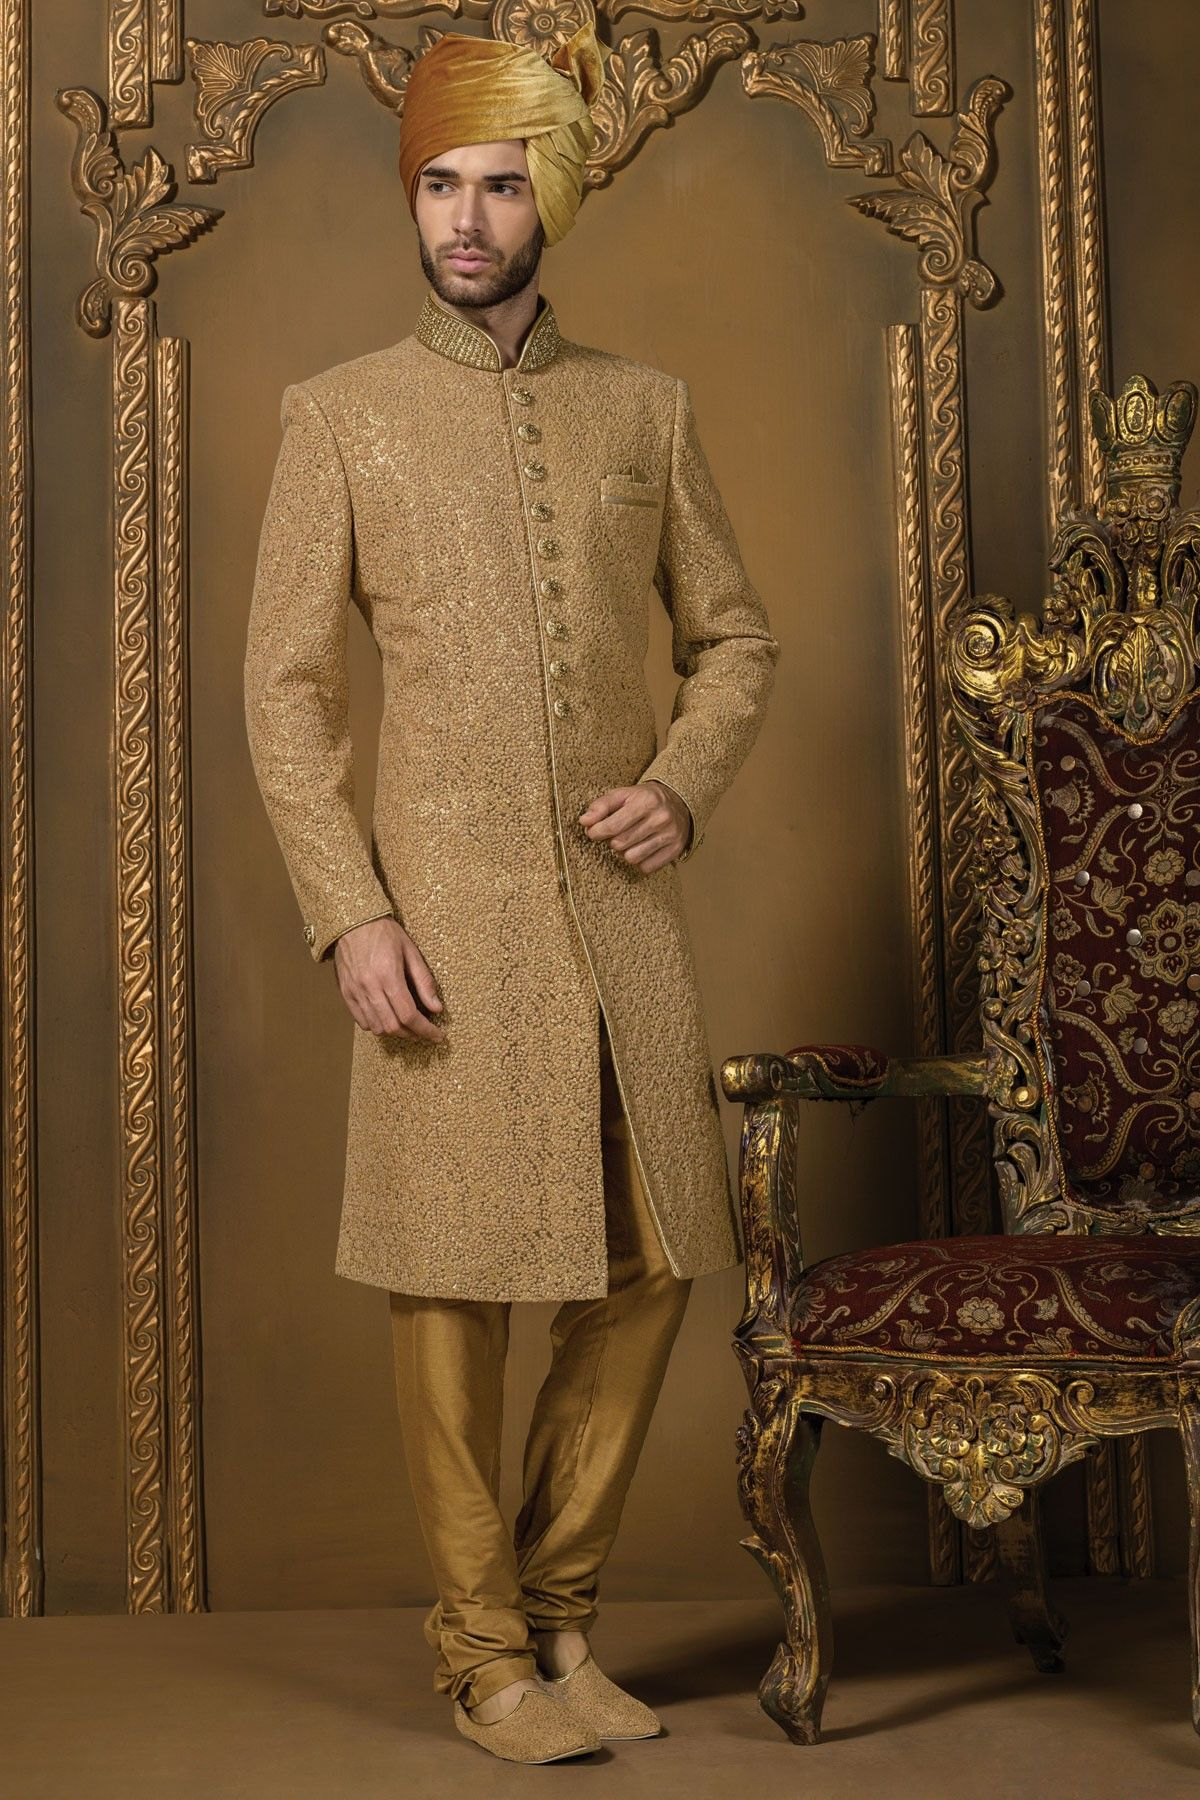 Image result for Pure Traditional Gold Sherwani: men